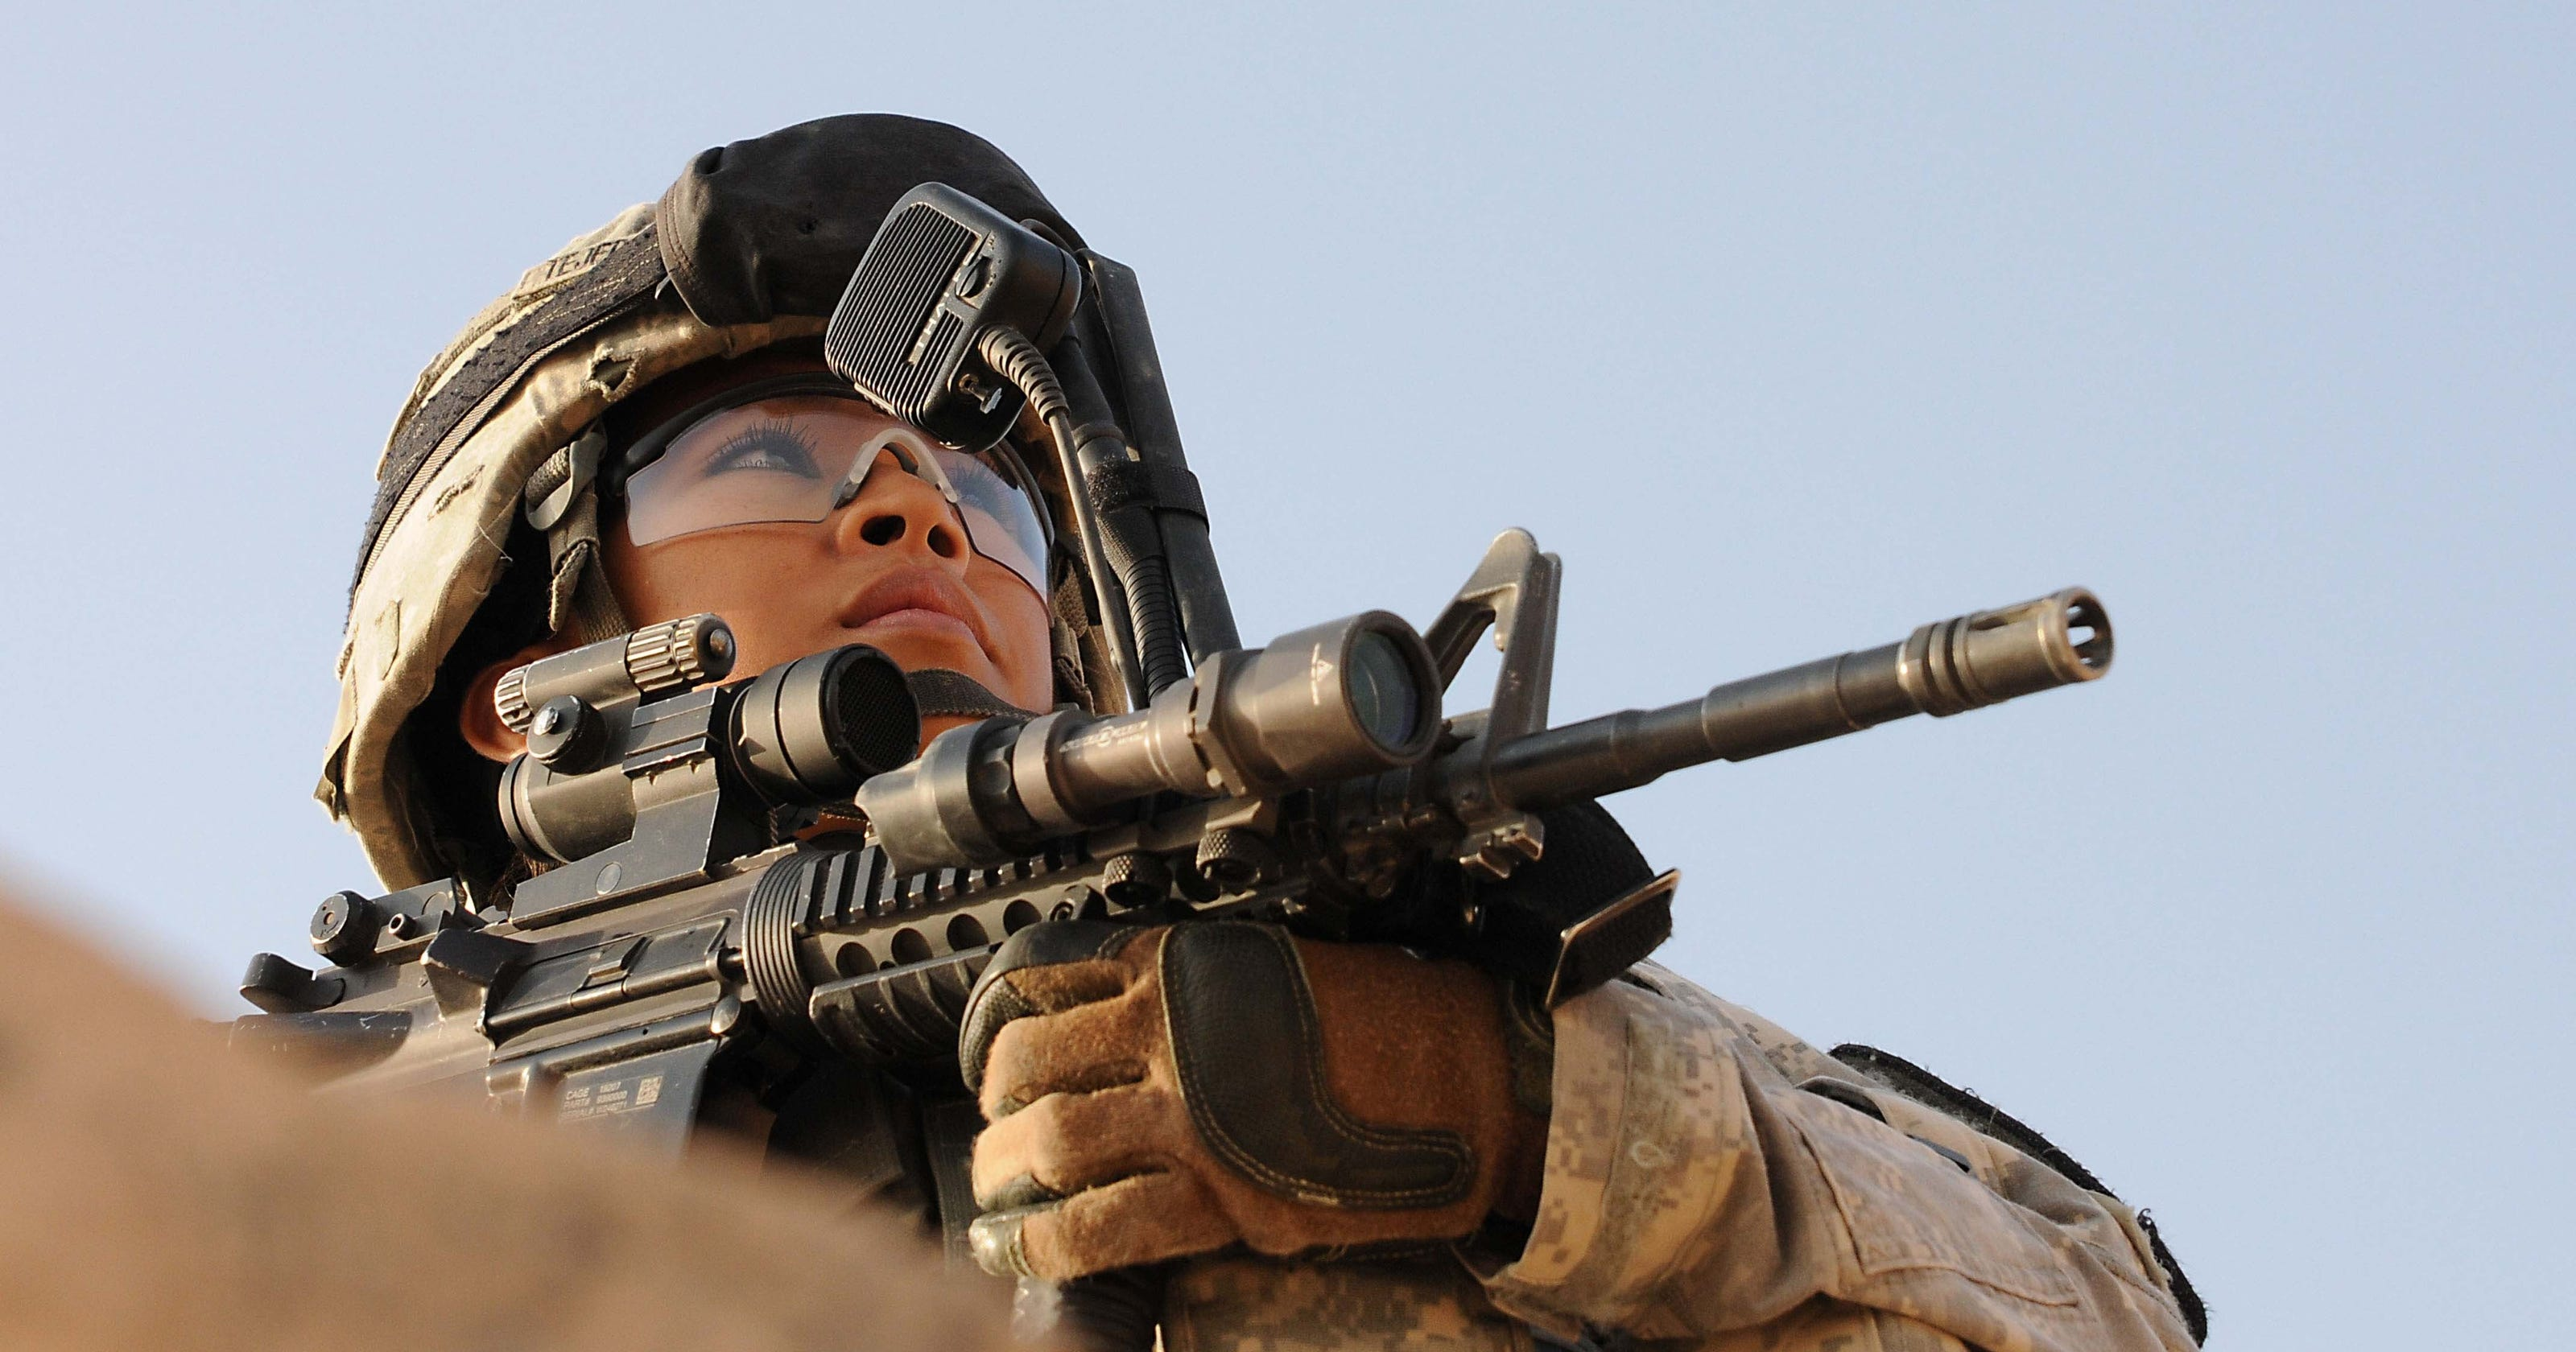 women in combat and developing military careers What types of military jobs did women take in world war ii air traffic controller jobs combat jobs jobs in munitions factories jobs in shipyards - 5186839.